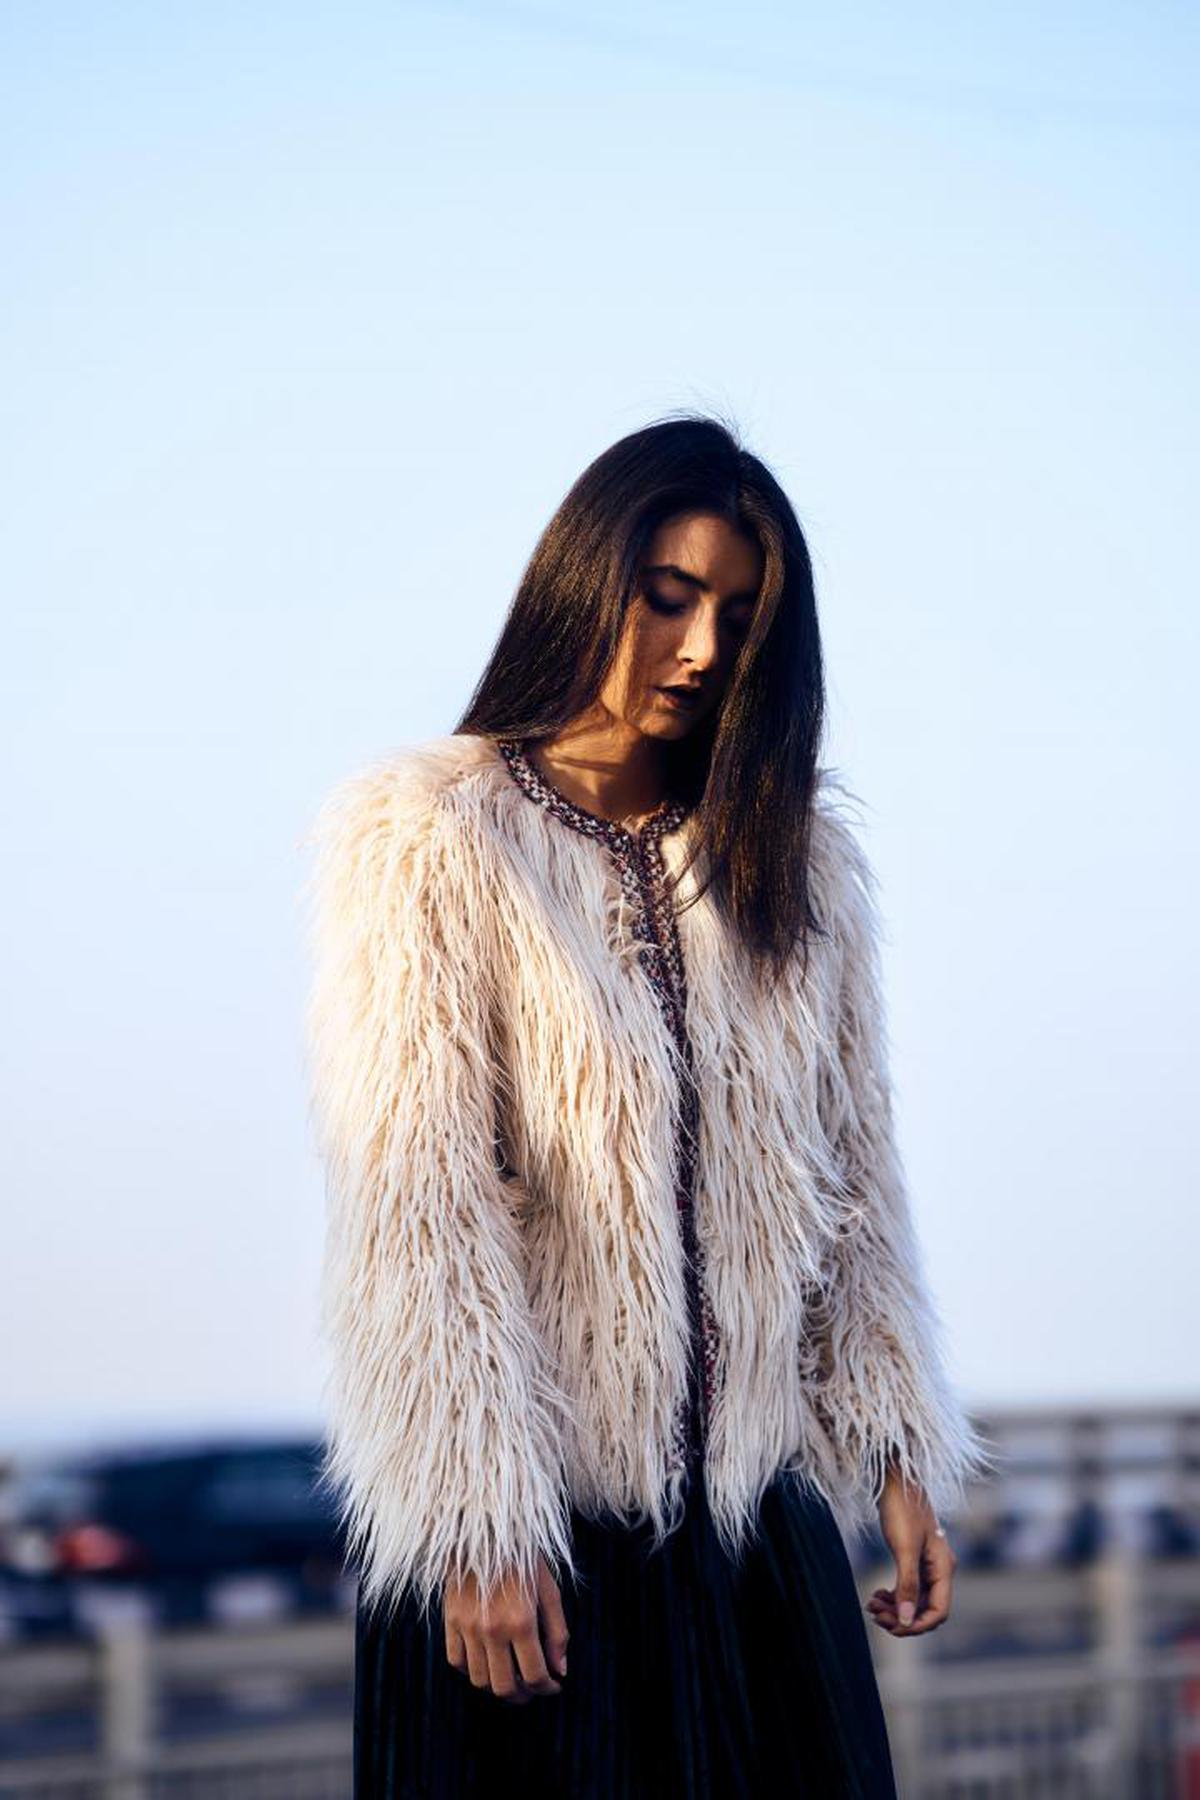 Image of Fur, Hair, Clothing, White, Street fashion, Fur clothing etc.